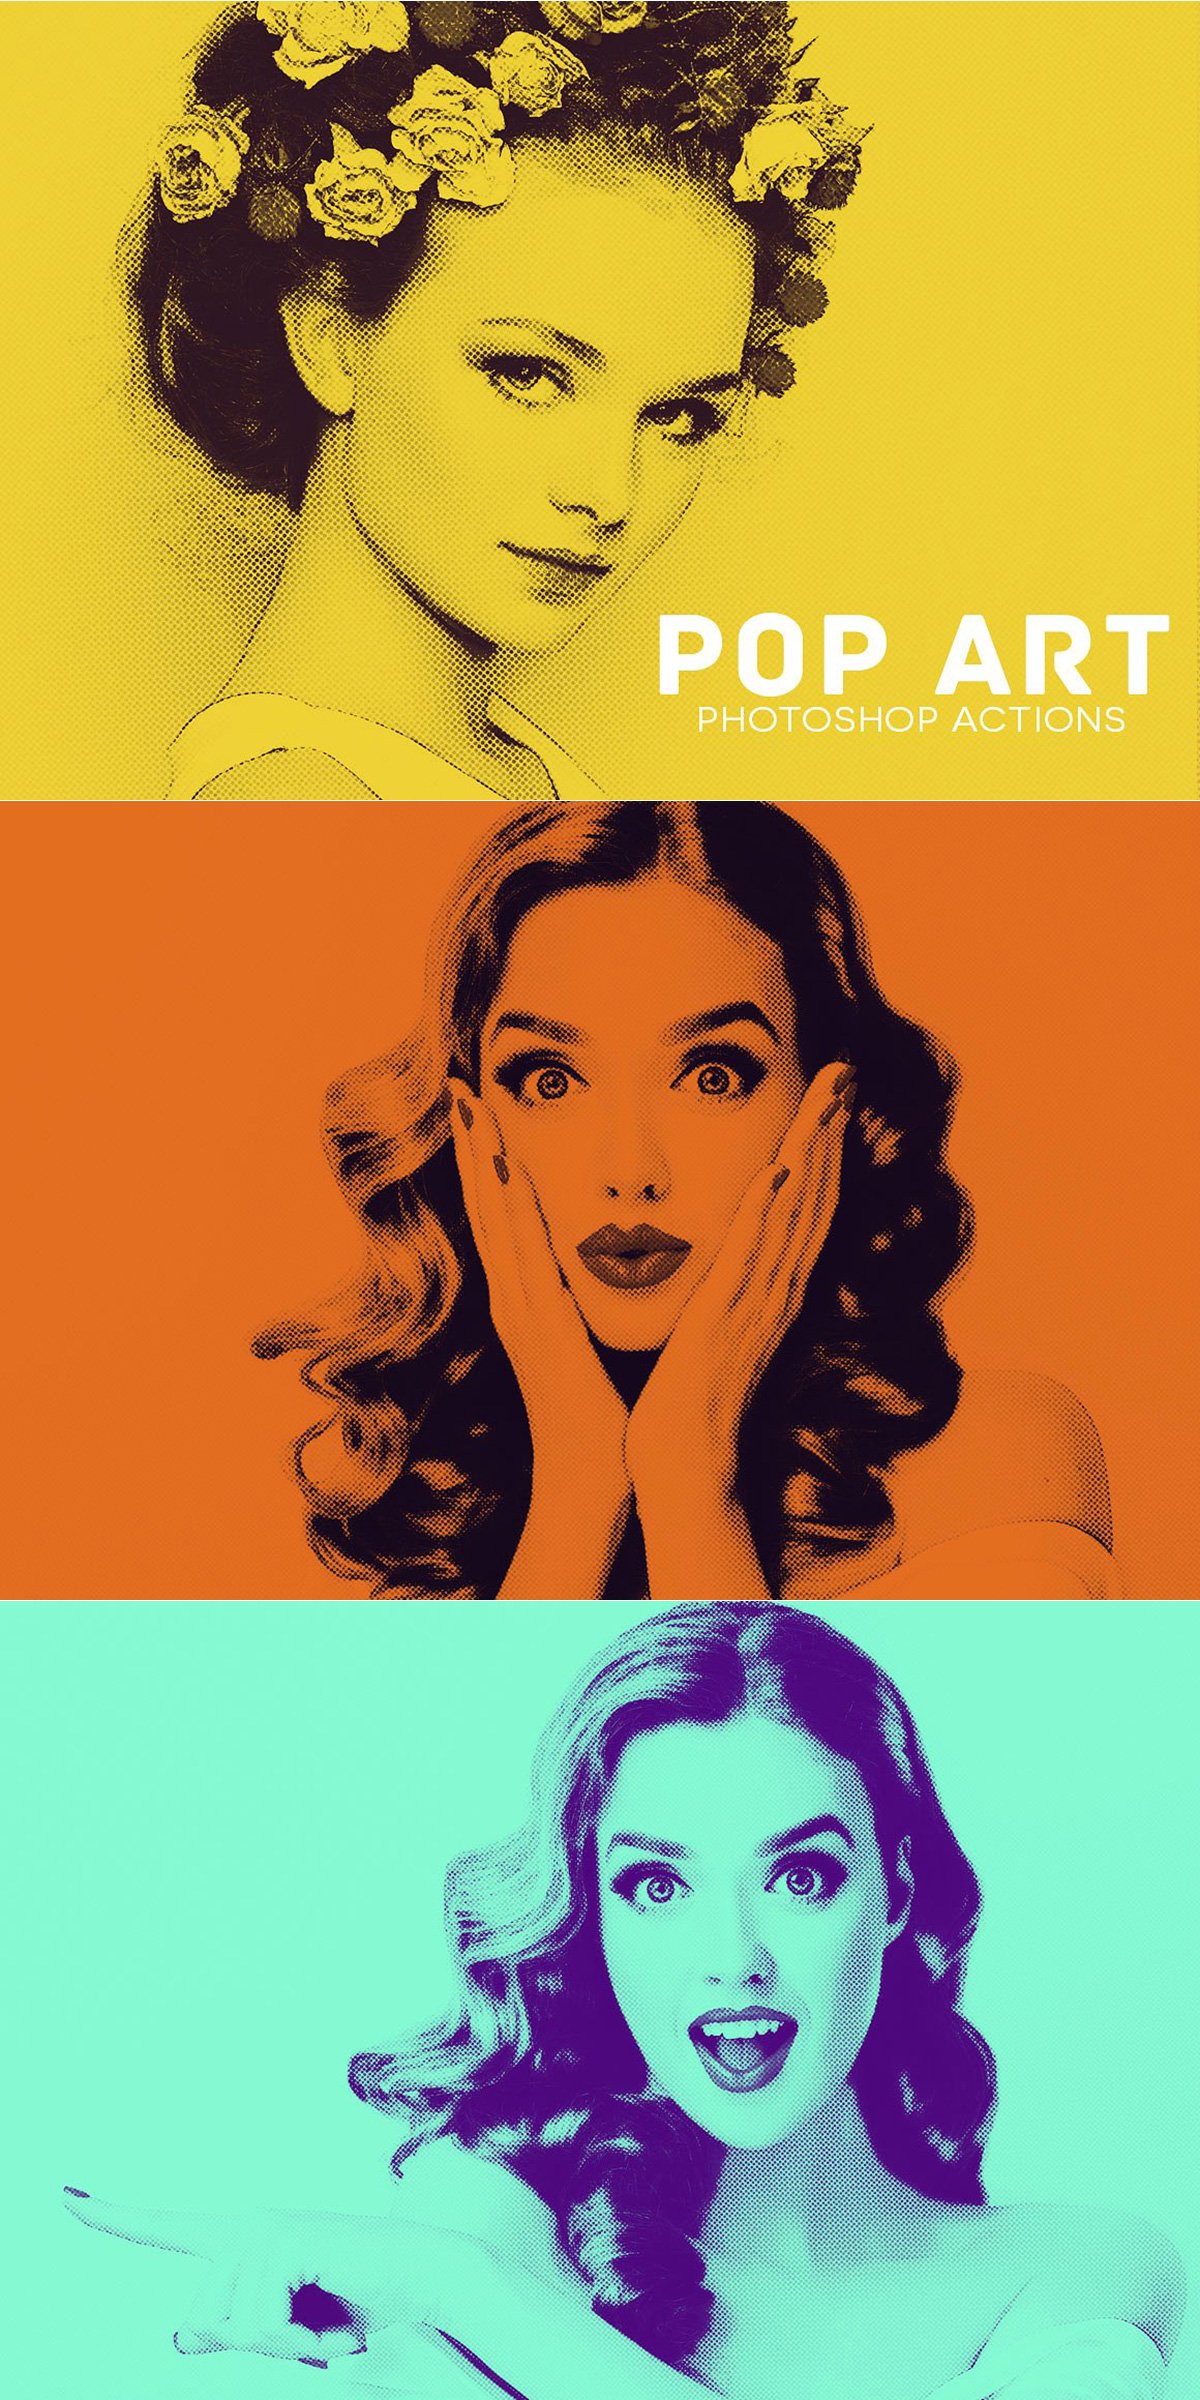 20 pop art photoshop actions